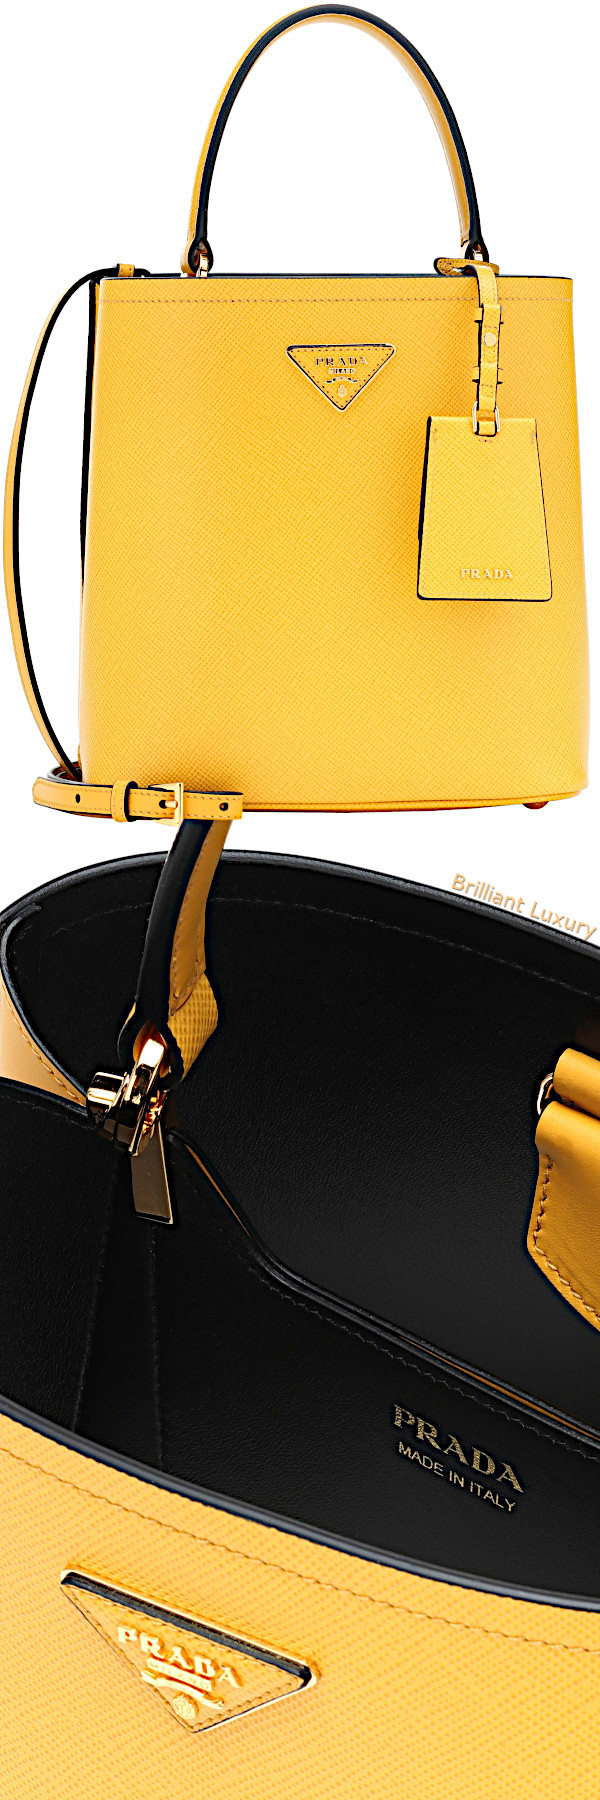 Prada double medium leather tote in yellow